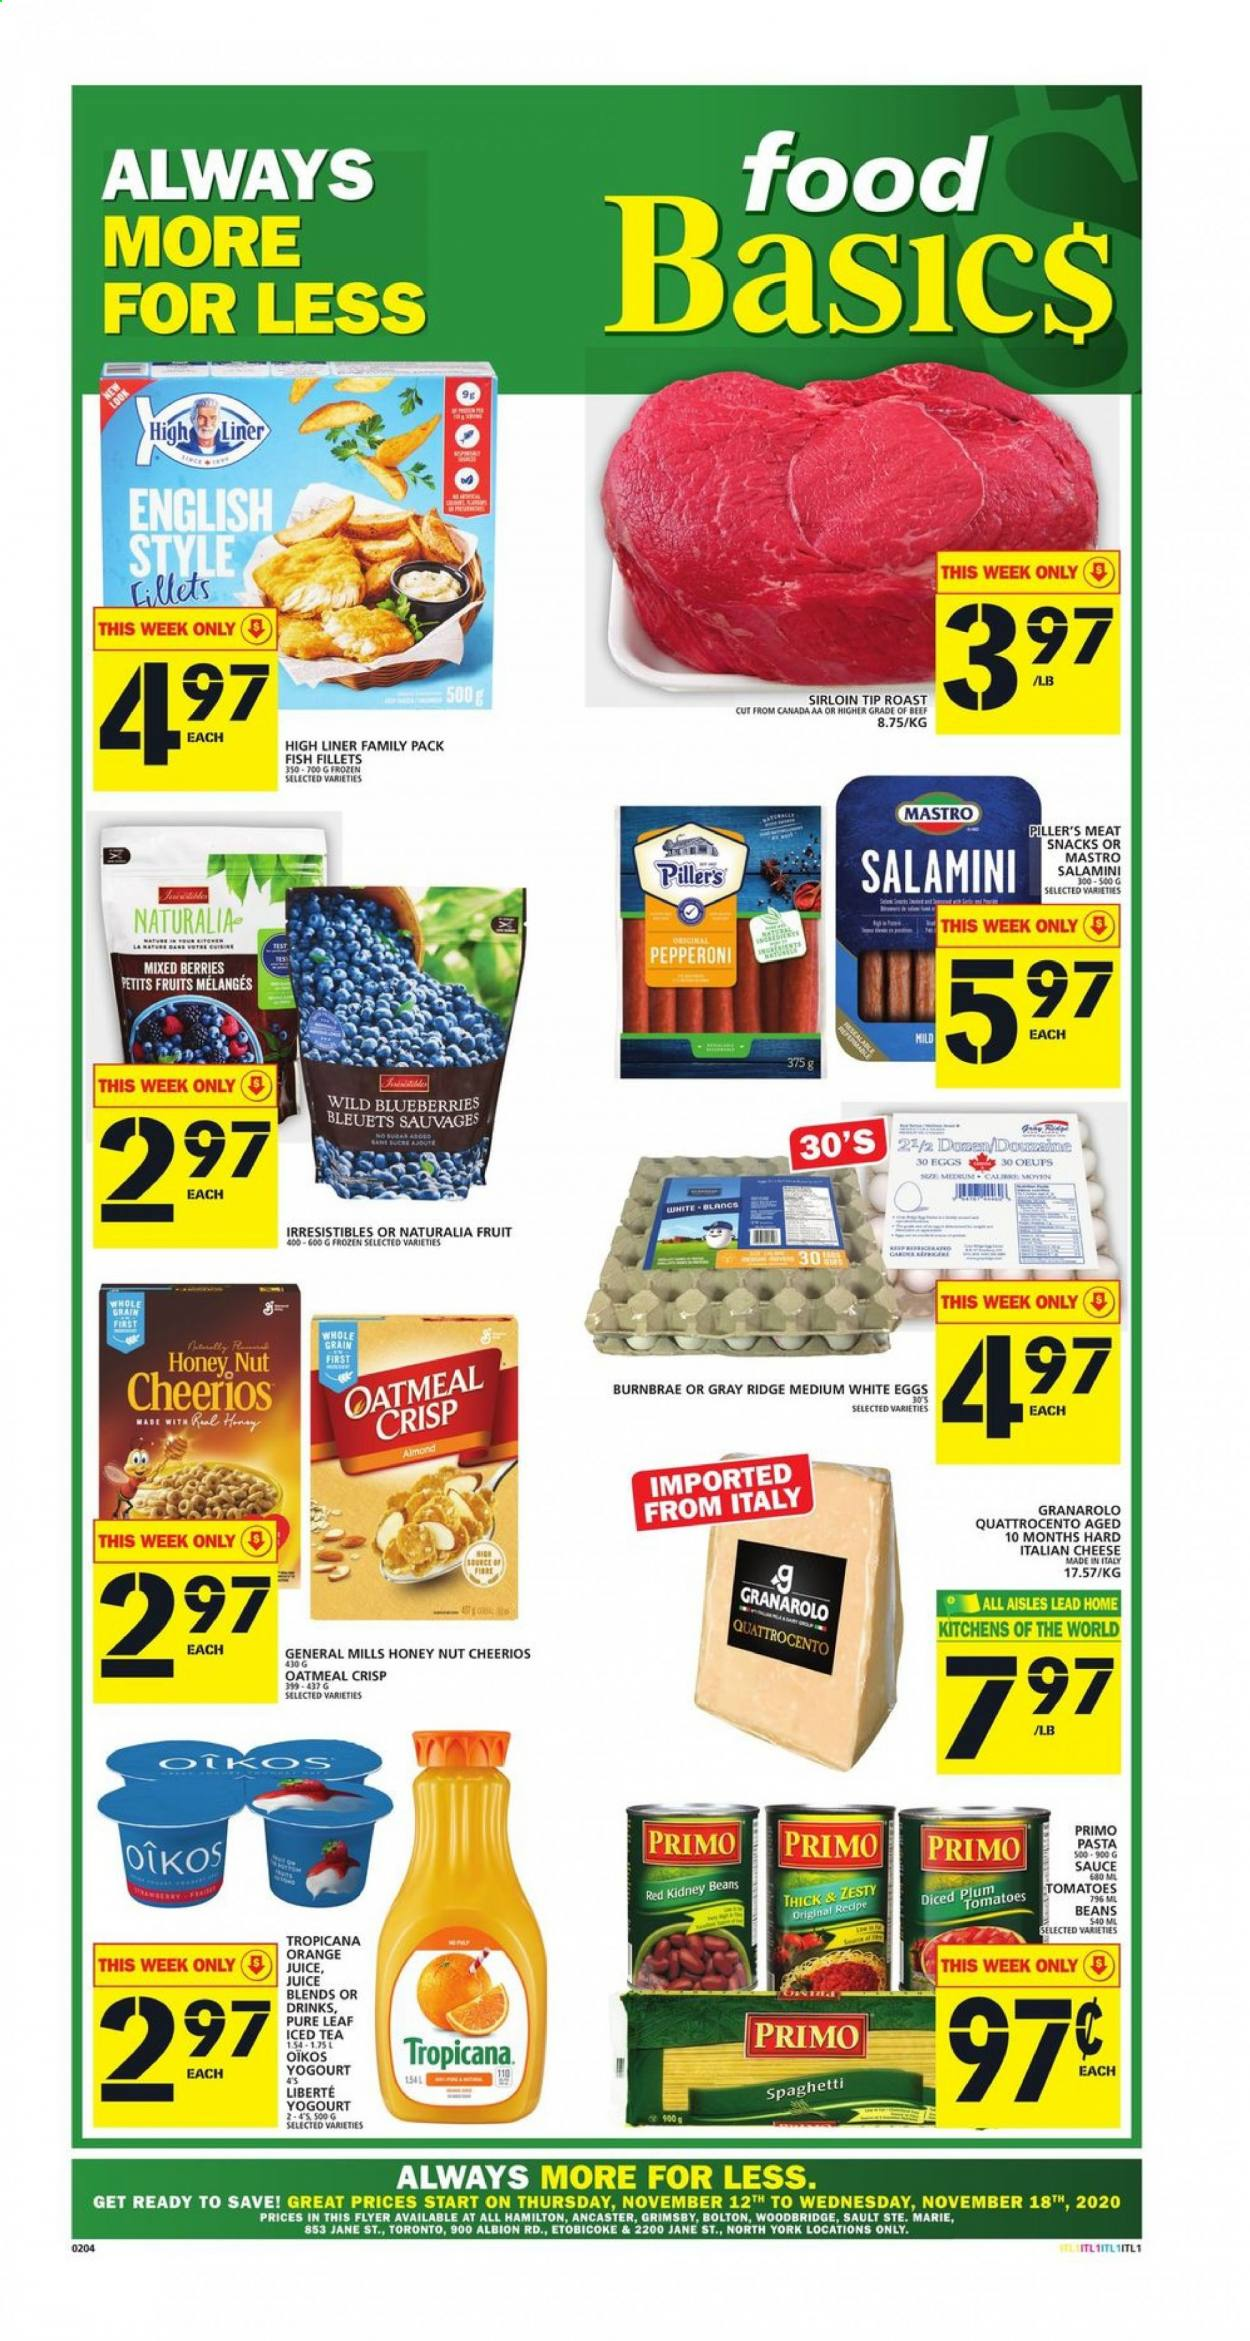 Food Basics Flyer - November 12, 2020 - November 18, 2020 - Sales products - always, beans, beef meat, blueberries, eggs, fish fillets, frozen, spaghetti, tea, tomatoes, honey, kidney beans, cheerios, pepperoni, oatmeal, cheese, juice, snack, iced tea, pasta, sauce, orange, tropicana, snacks, egg, fruits, family pack, meat, fish, roast, tomato. Page 1.